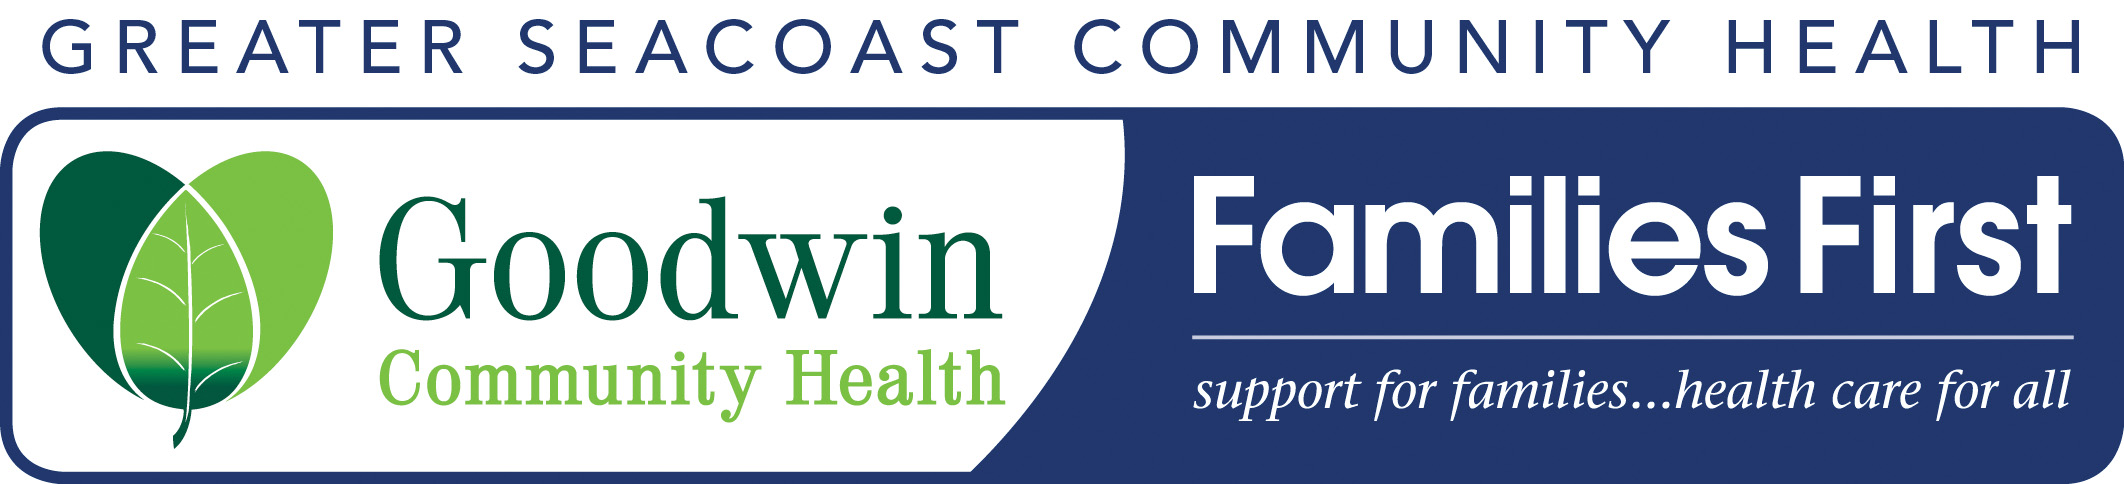 Greater Seacoast Community Health